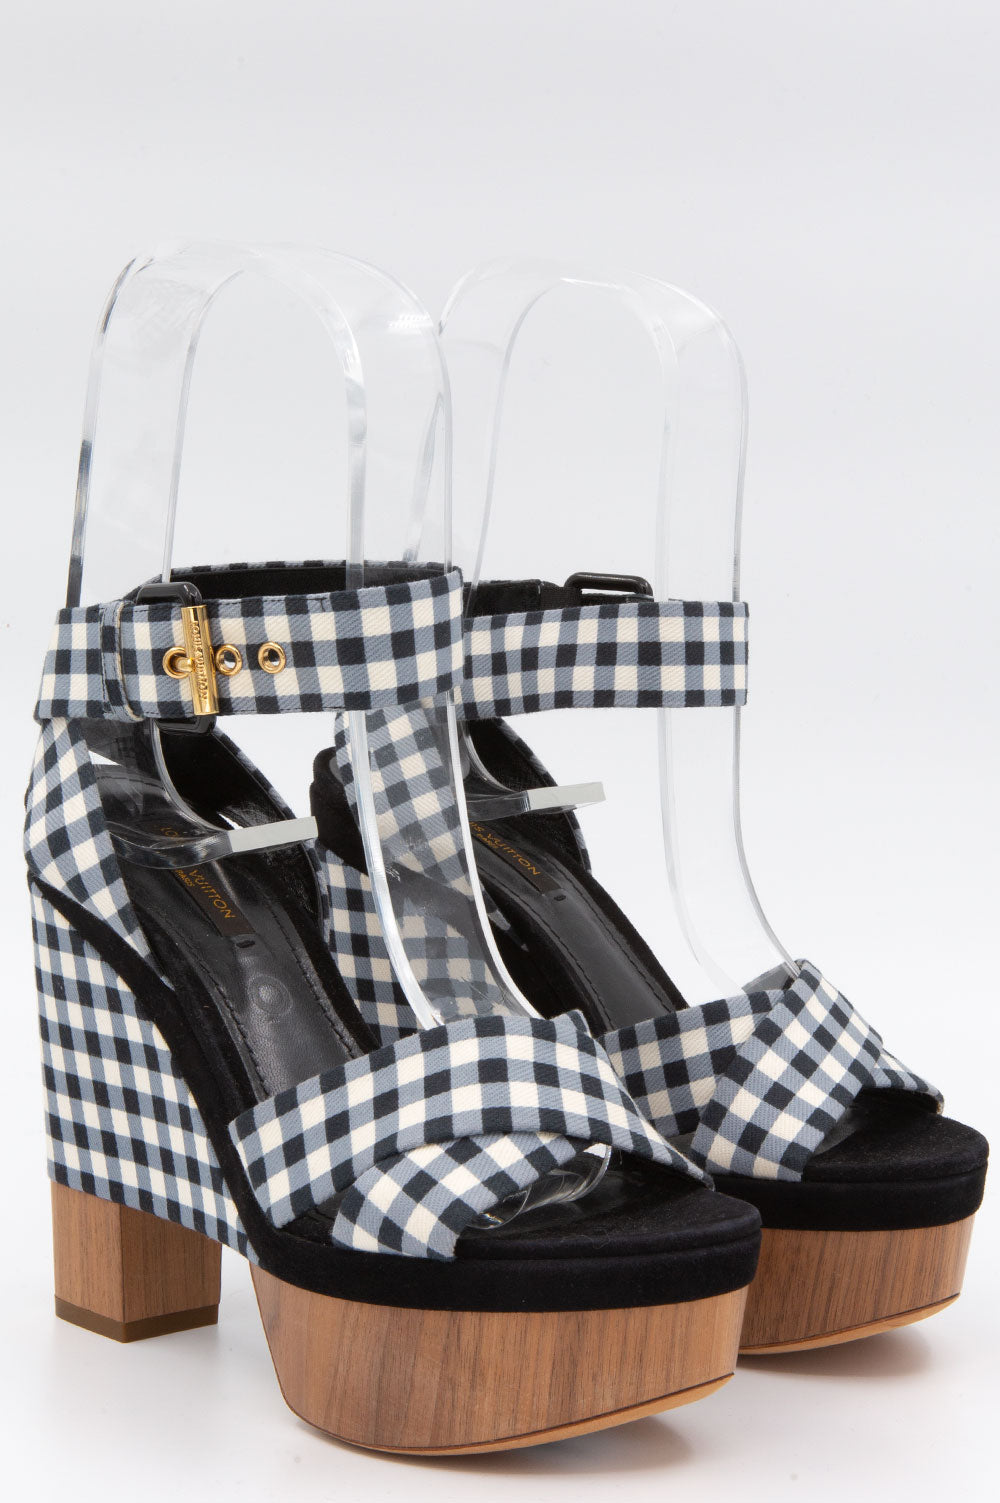 LOUIS VUITTON Gingham Platforms